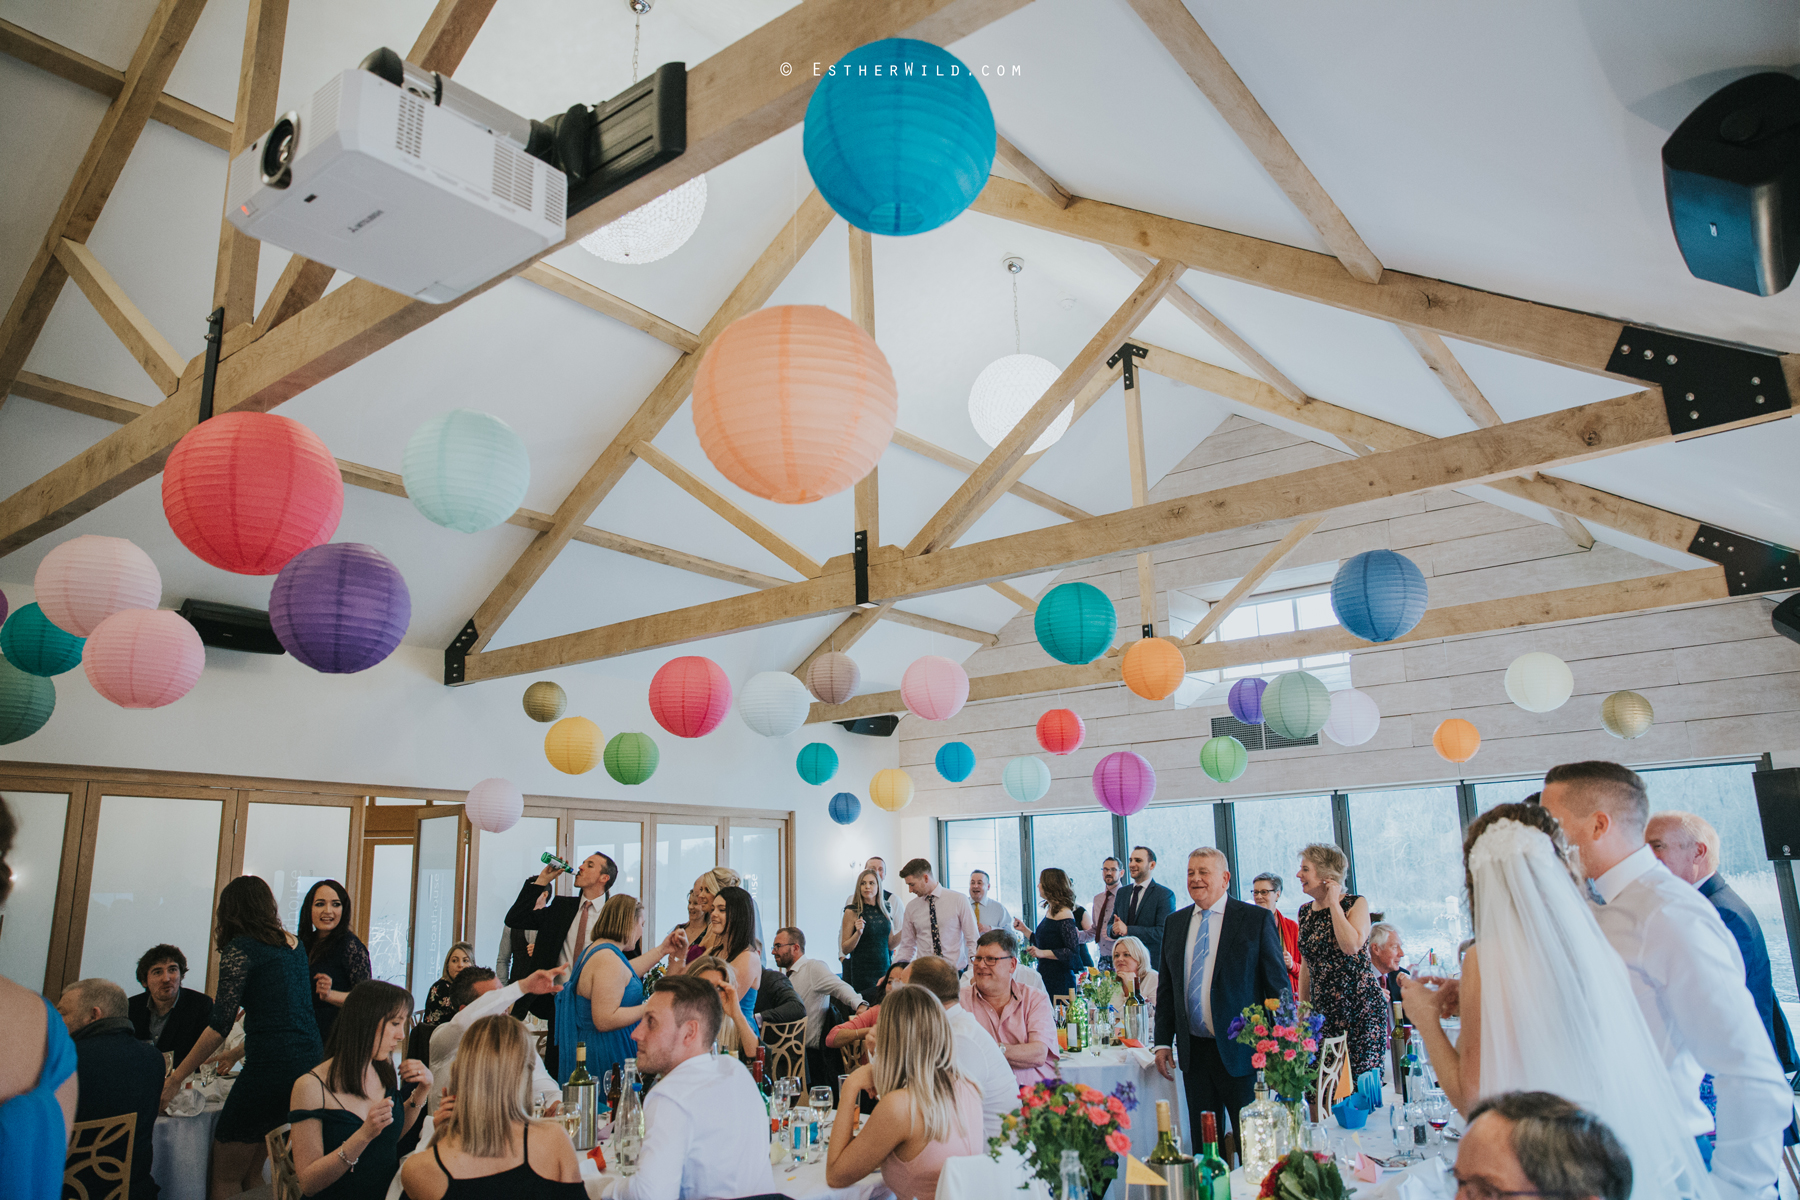 The_BoatHouse_Wedding_Venue_Ormesby_Norfolk_Broads_Boat_Wedding_Photography_Esther_Wild_Photographer_IMG_2406.jpg